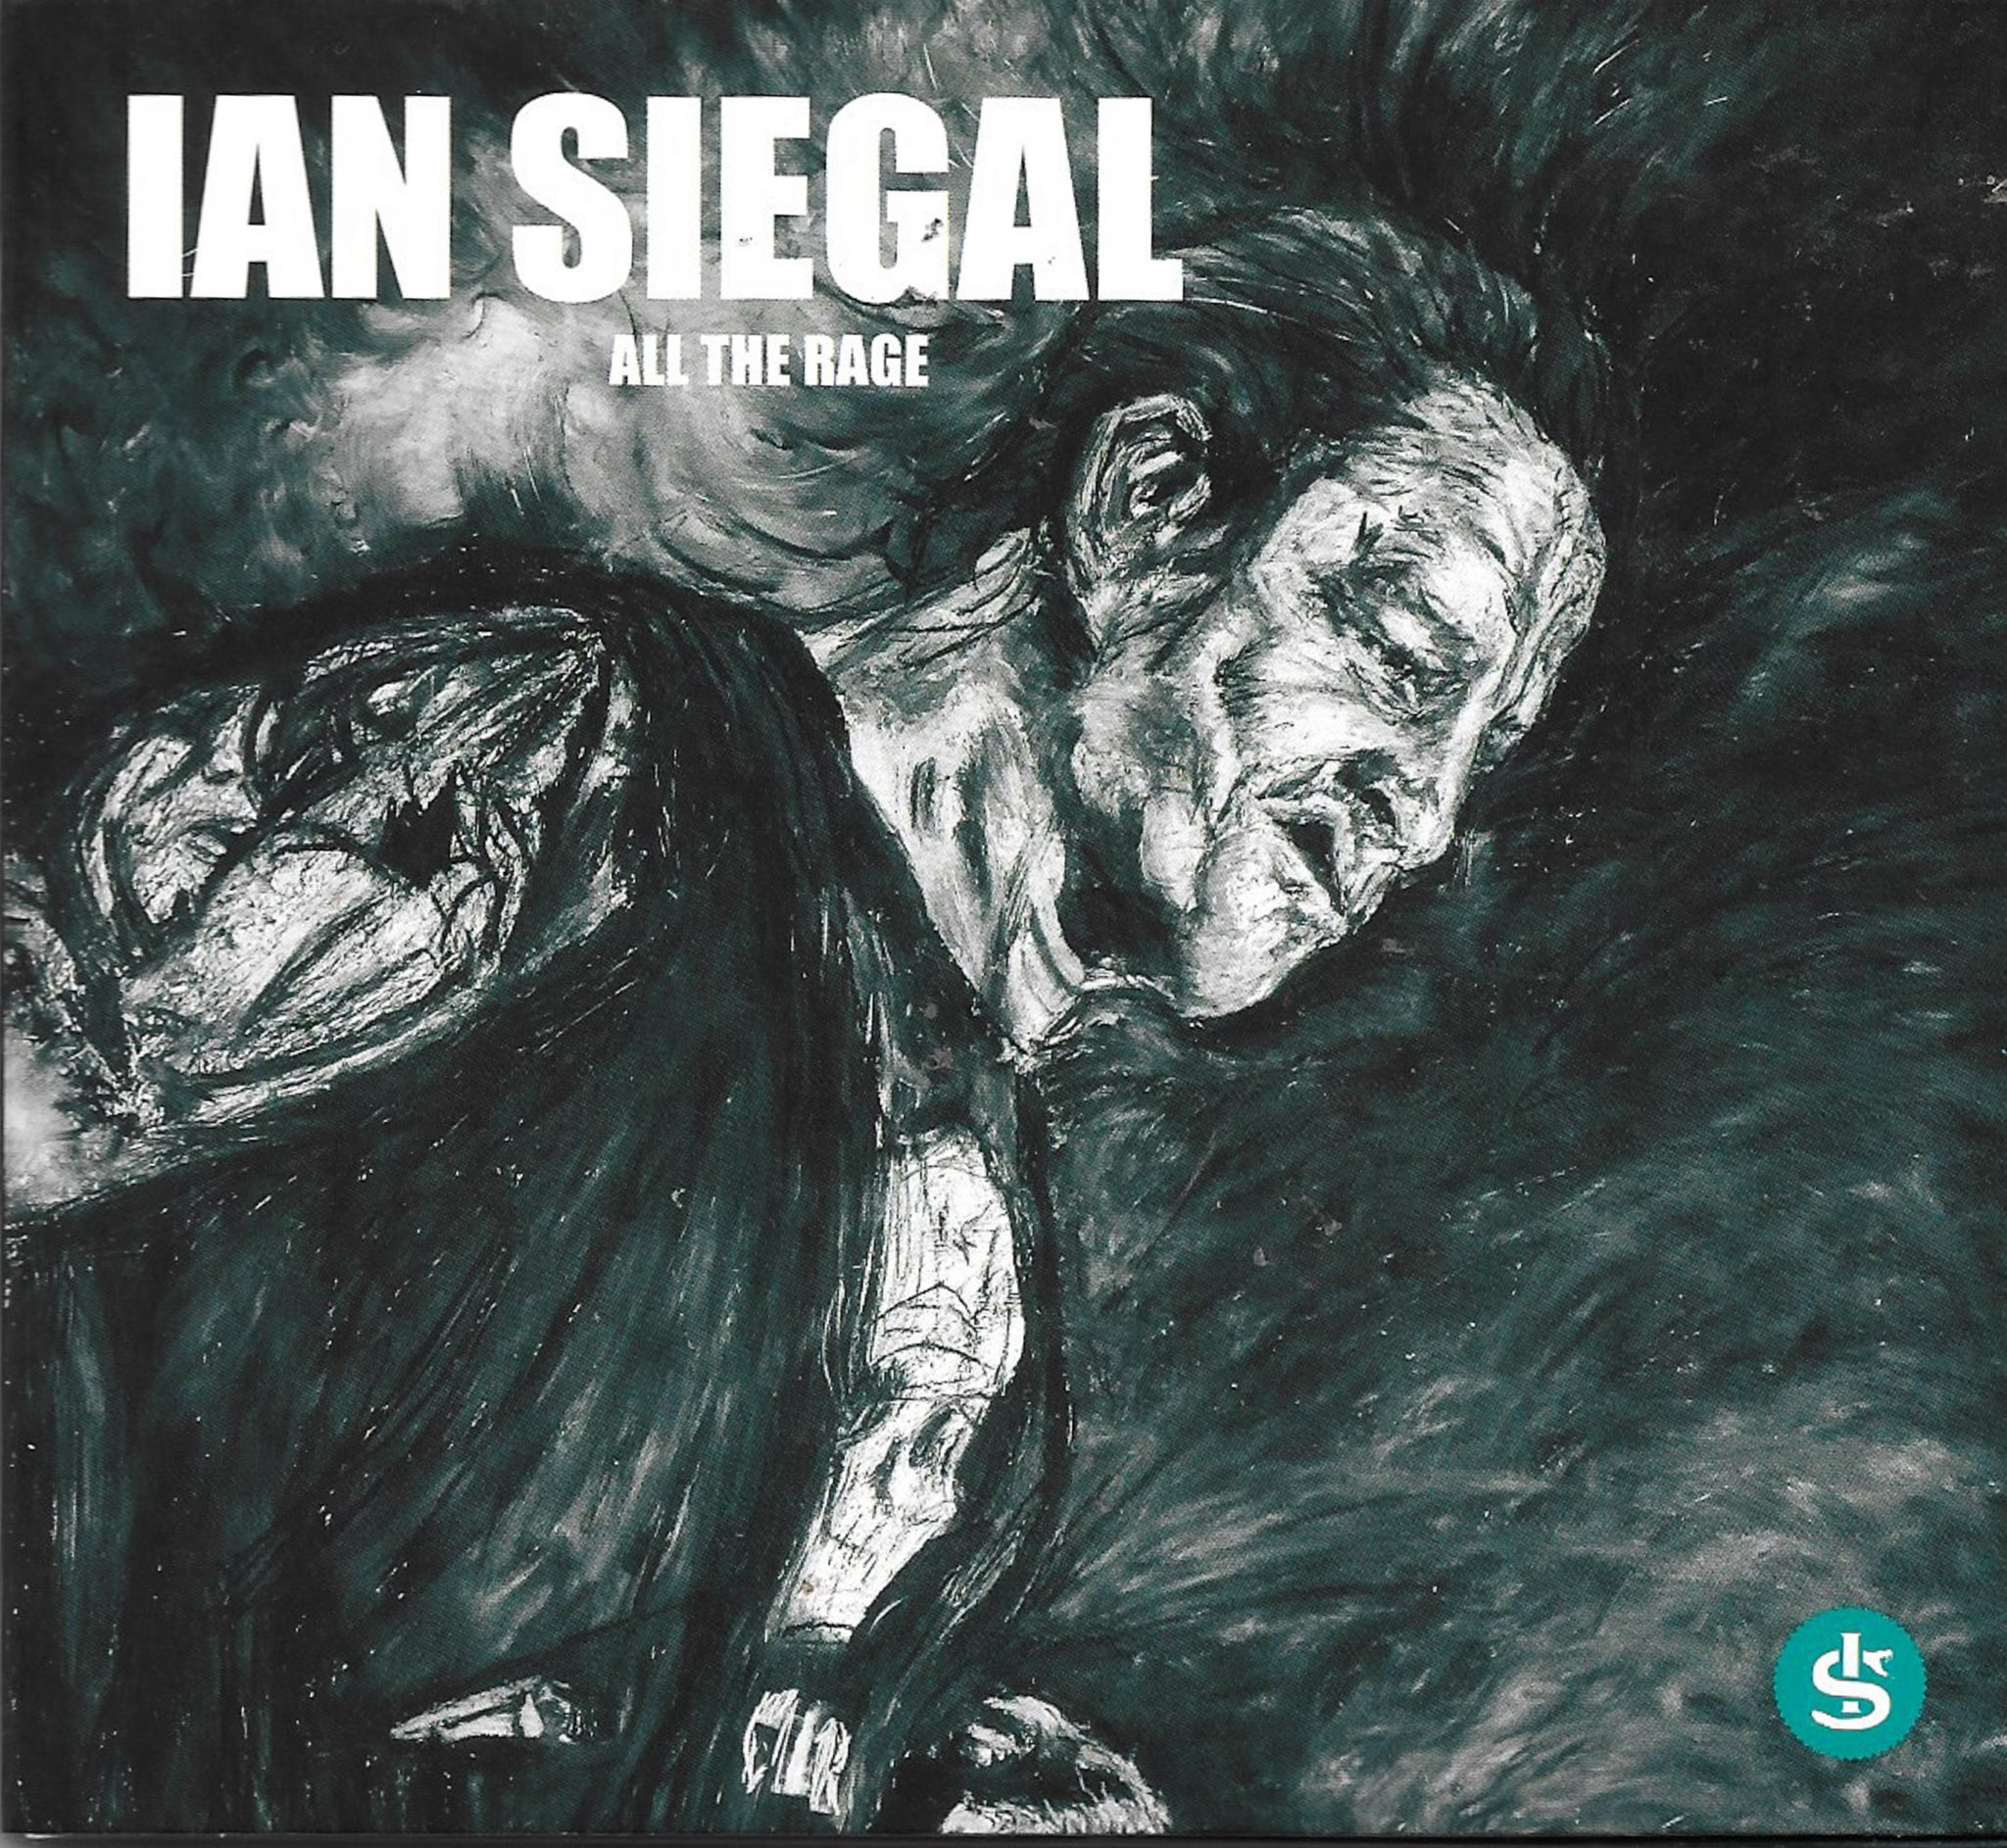 Ian Siegal New Album Is Definitely All The Rage